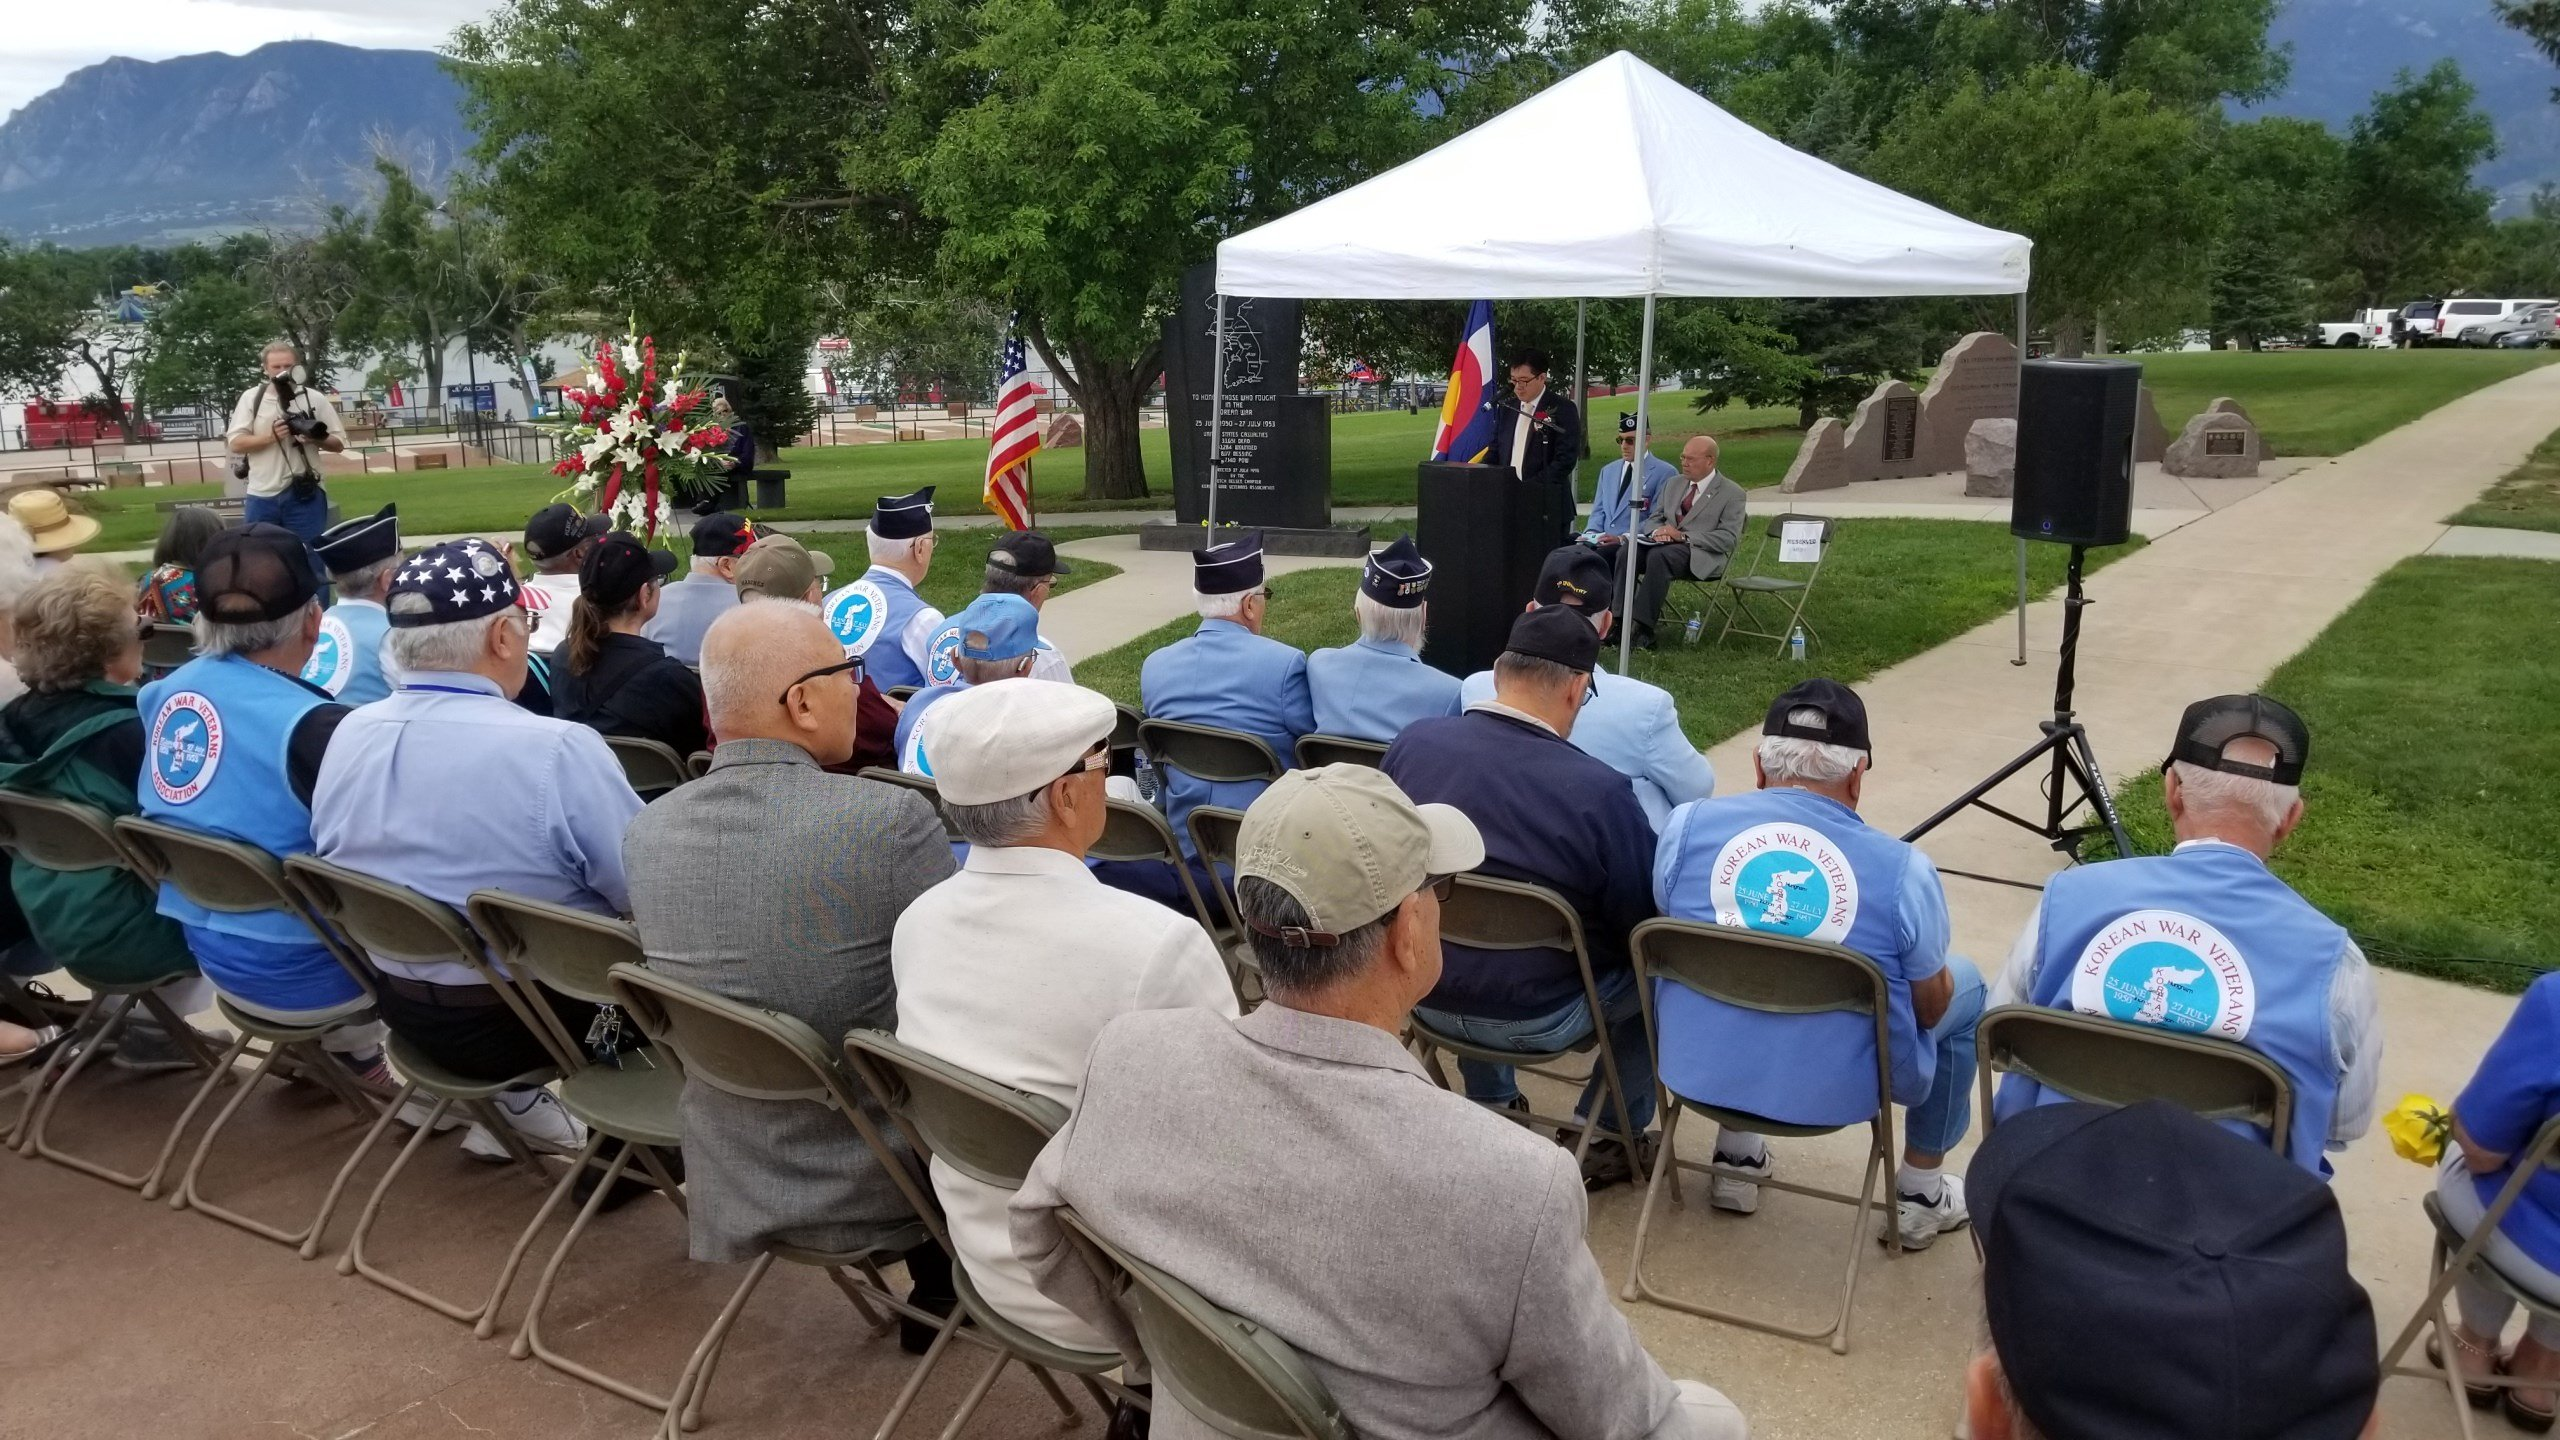 Ceremony held at Memorial Park in Colorado Springs by the members of the Dutch Nelsen Chapter of the Korean War Veterans Association